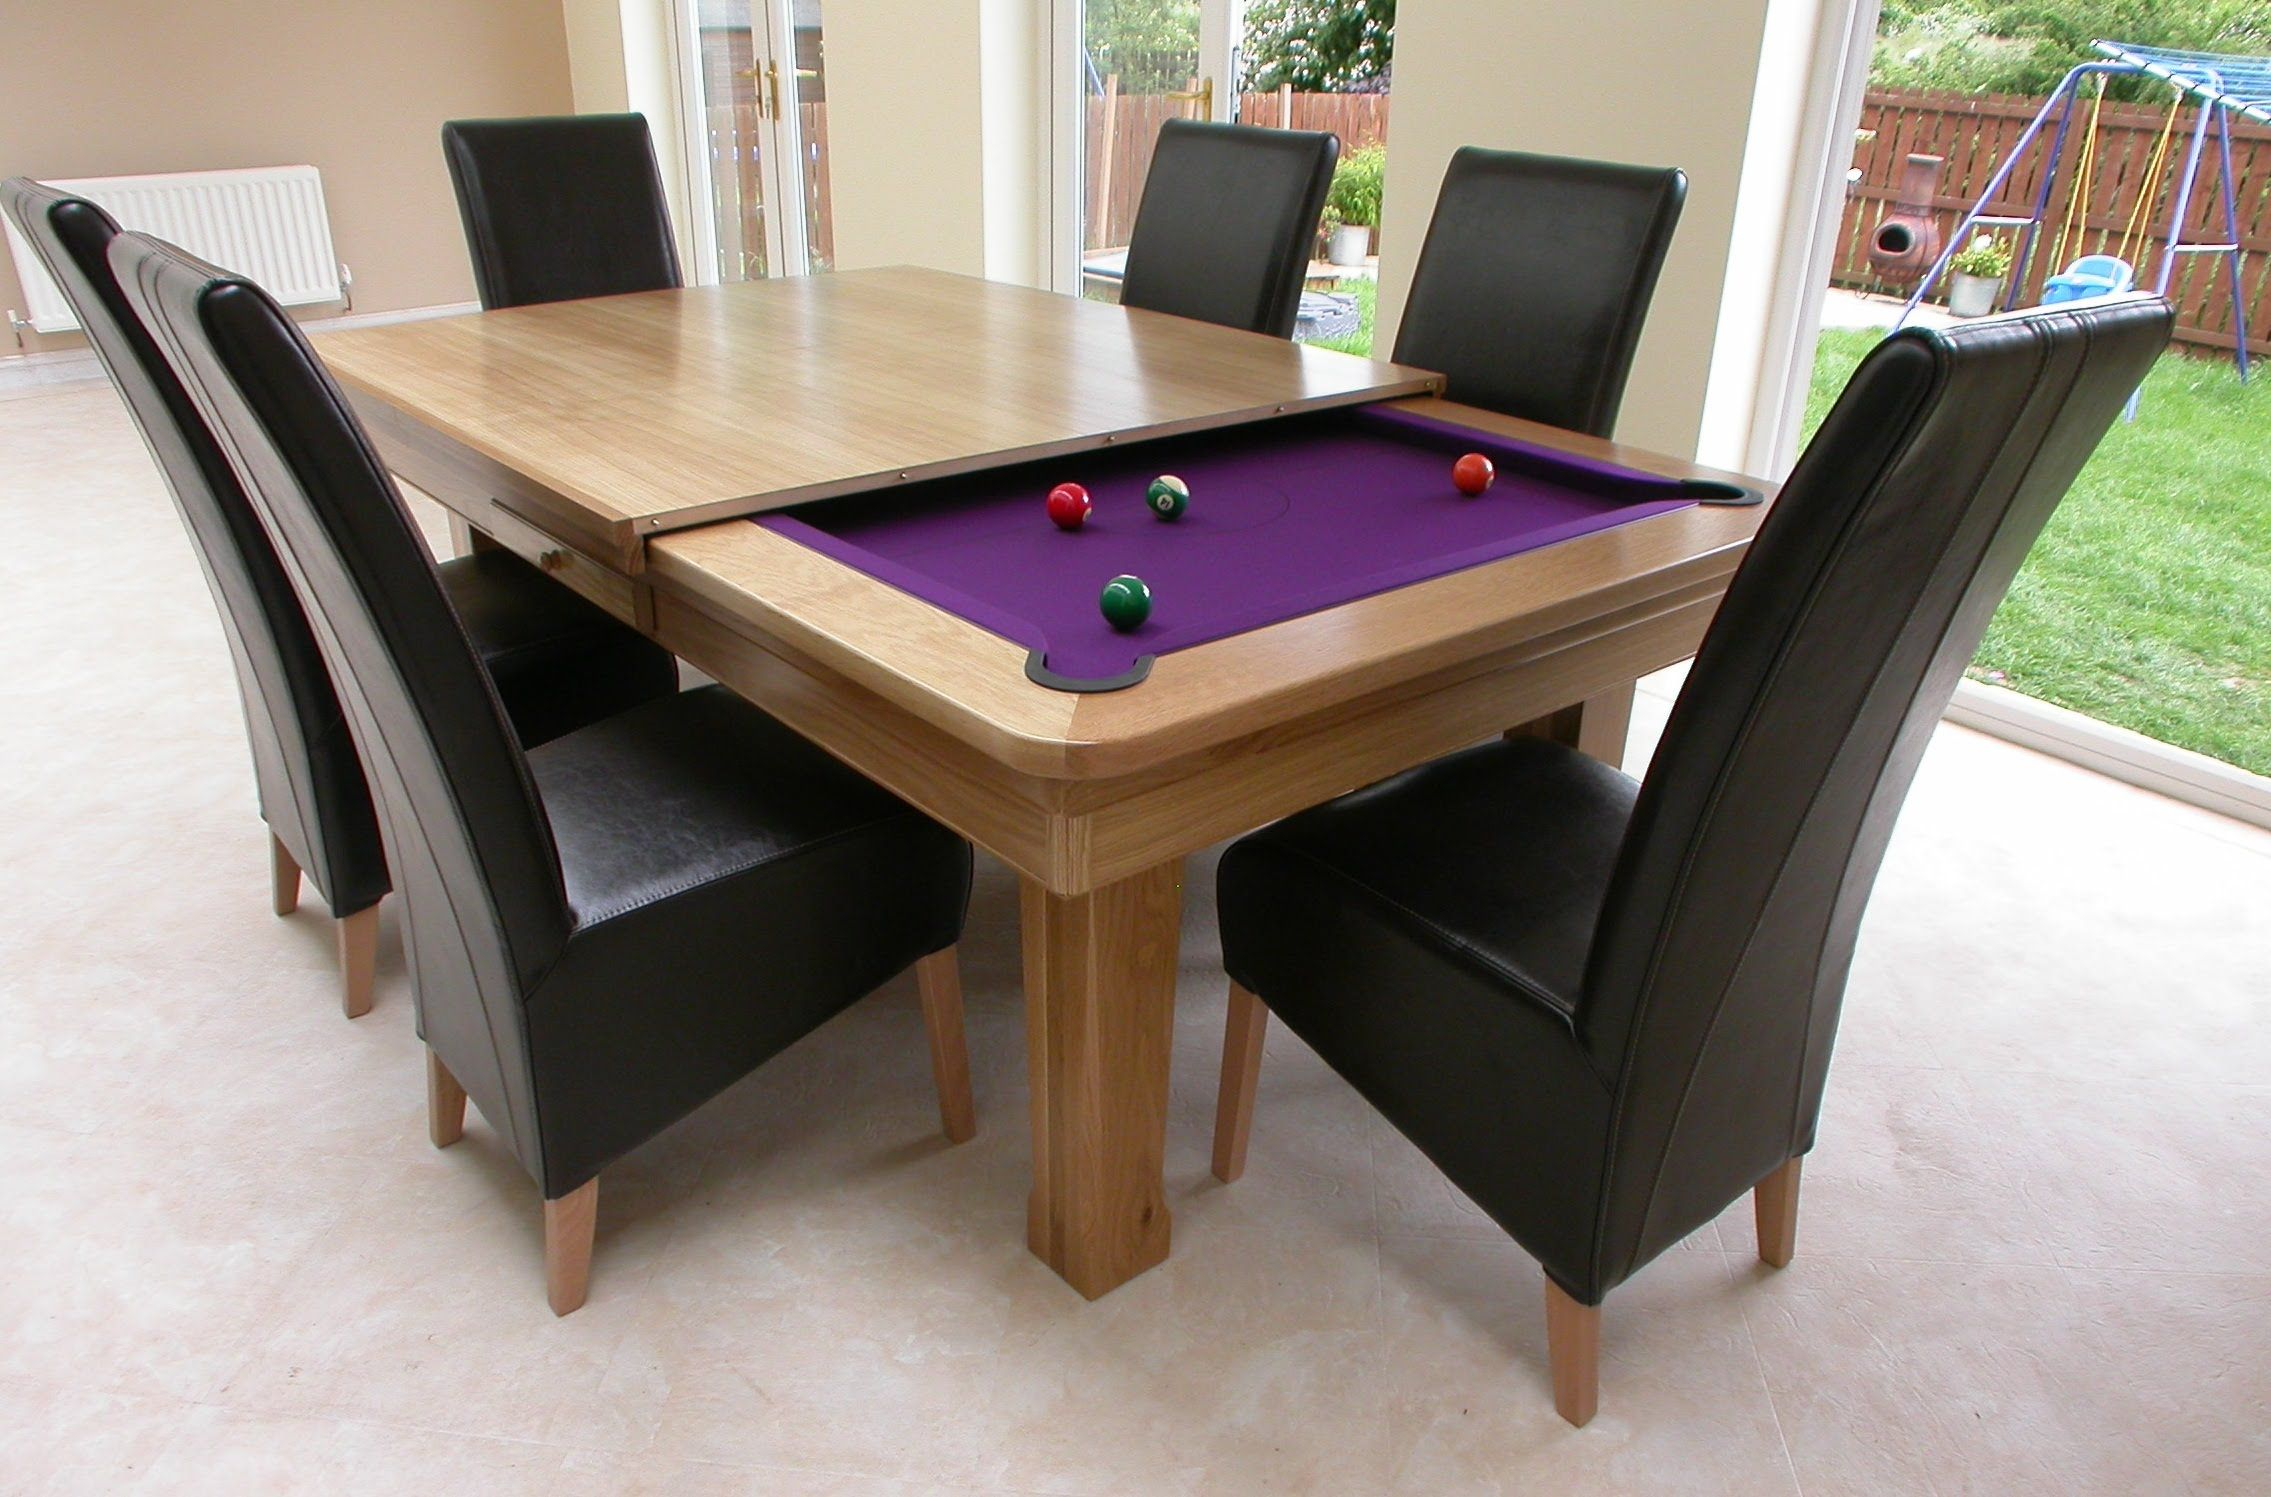 Awesome Pool Table Dining Table Combo Youtube Pool Table Dining Table Dining Room Pool Table Pool Table Room